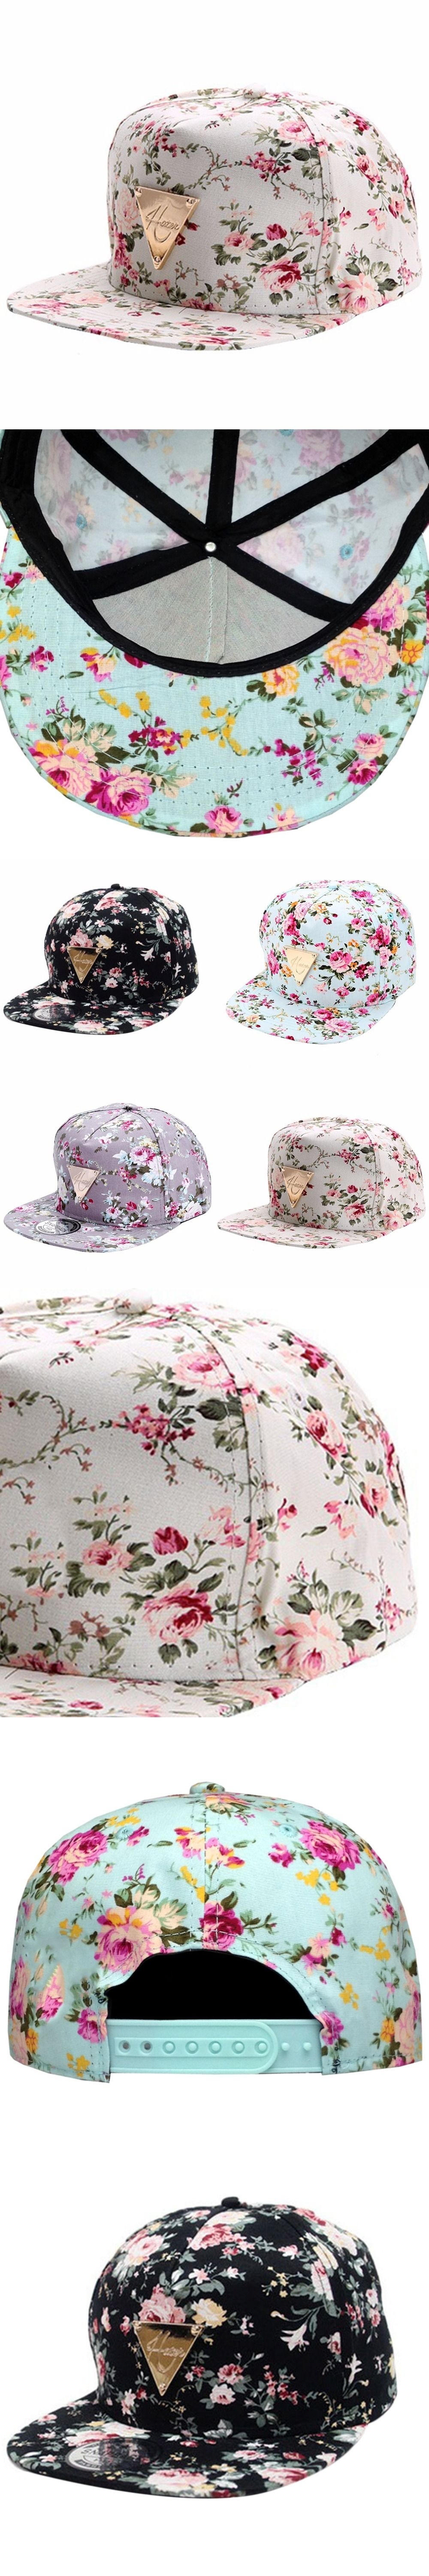 592e5e750cb Men Women Floral Snapback Hat Flower Baseball Cap Hip Hop Caps Hip-Hop Flat  Adjustable